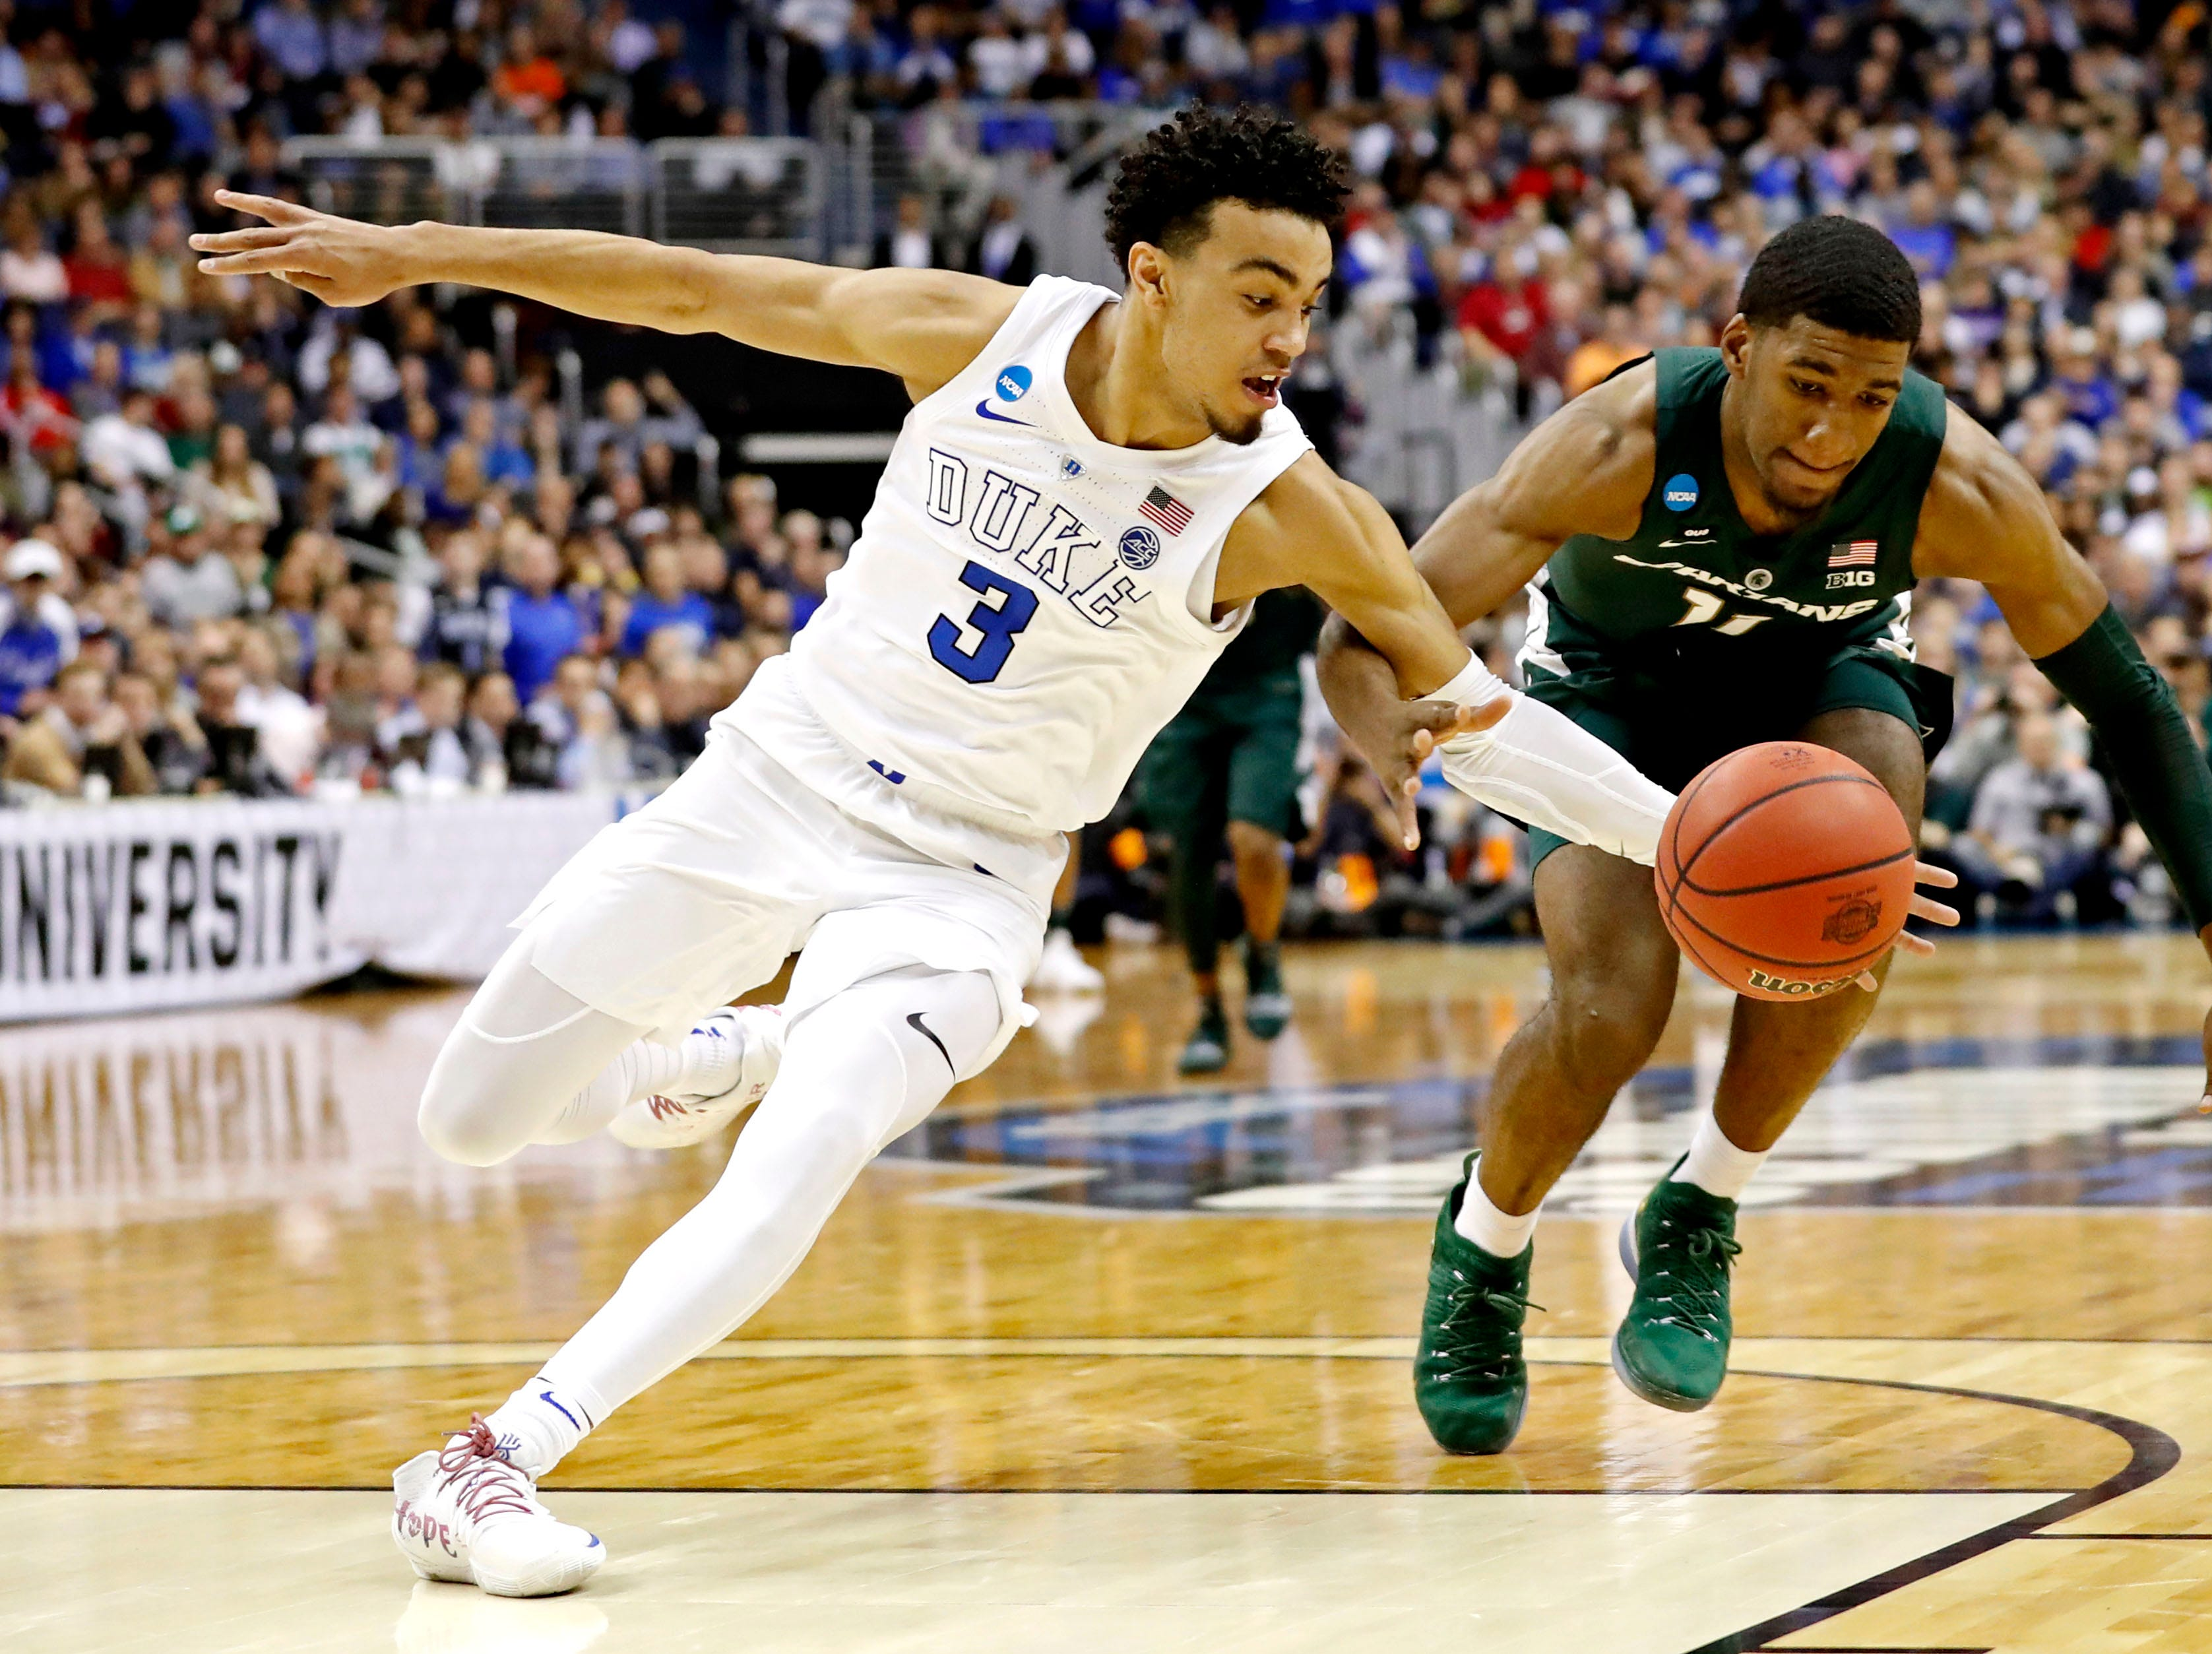 Duke Blue Devils guard Tre Jones (3) and Michigan State Spartans forward Aaron Henry (11) go for a loose ball during the first half in the championship game of the east regional of the 2019 NCAA Tournament at Capital One Arena.